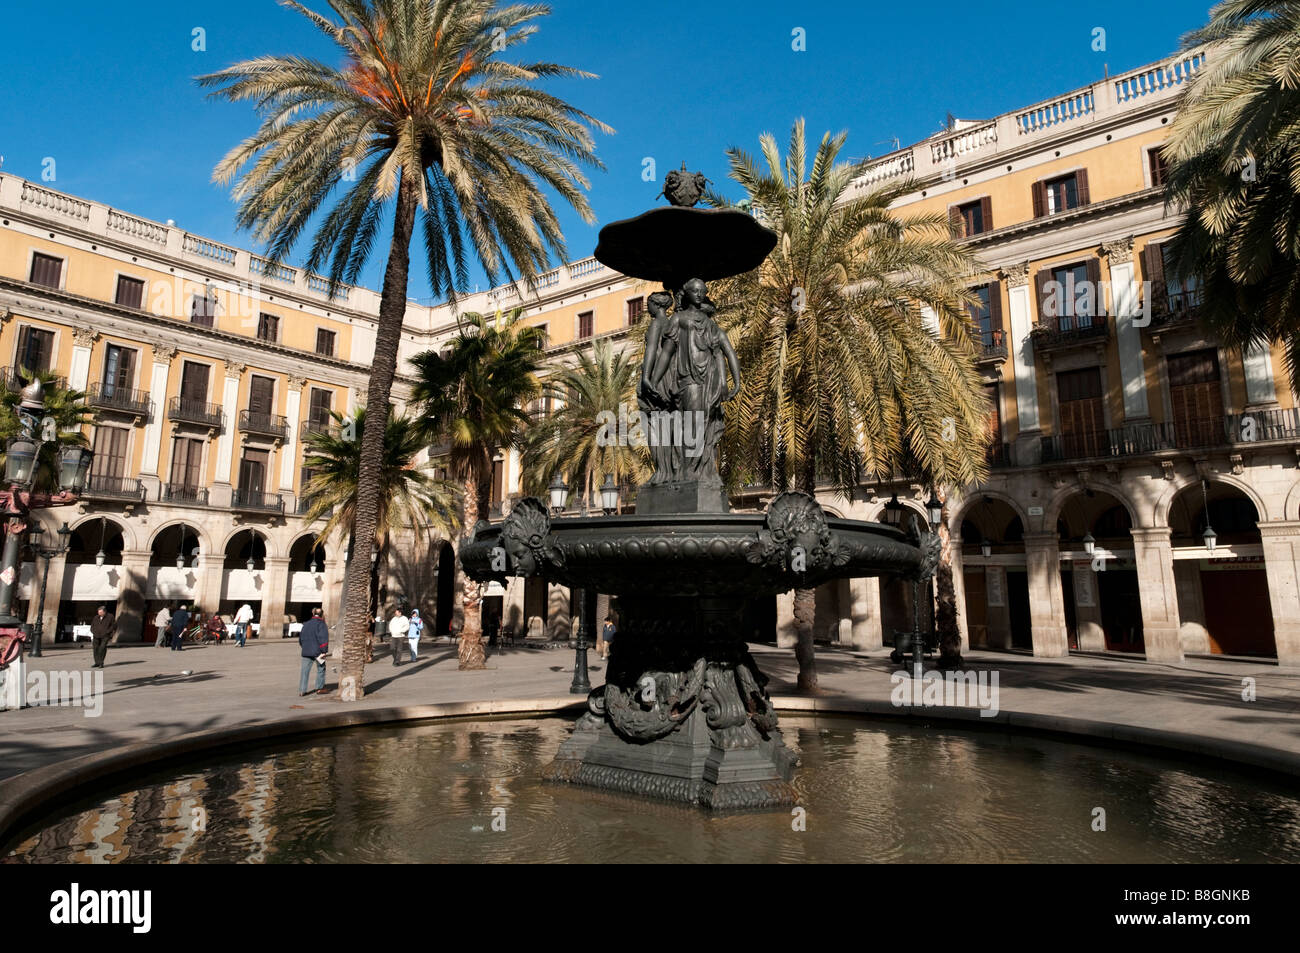 Fountain in the Placa Reial, Barcelona, Spain - Stock Image